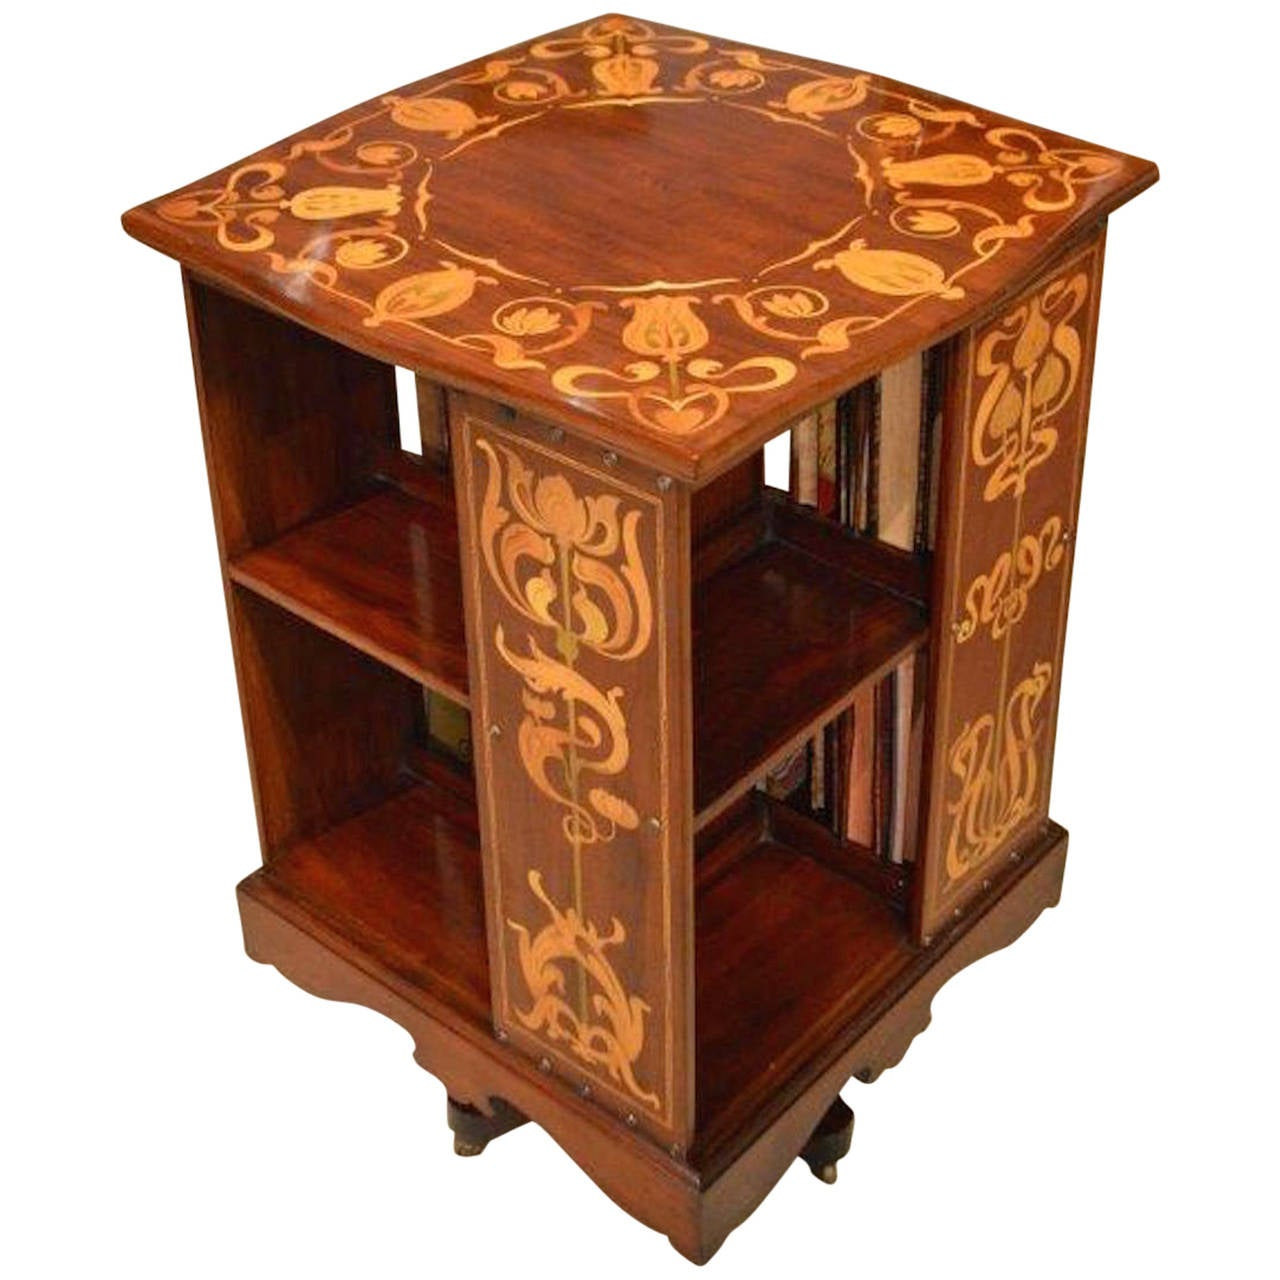 Arts and crafts mahogany revolving bookcase by shapland for Arts and crafts bookshelf